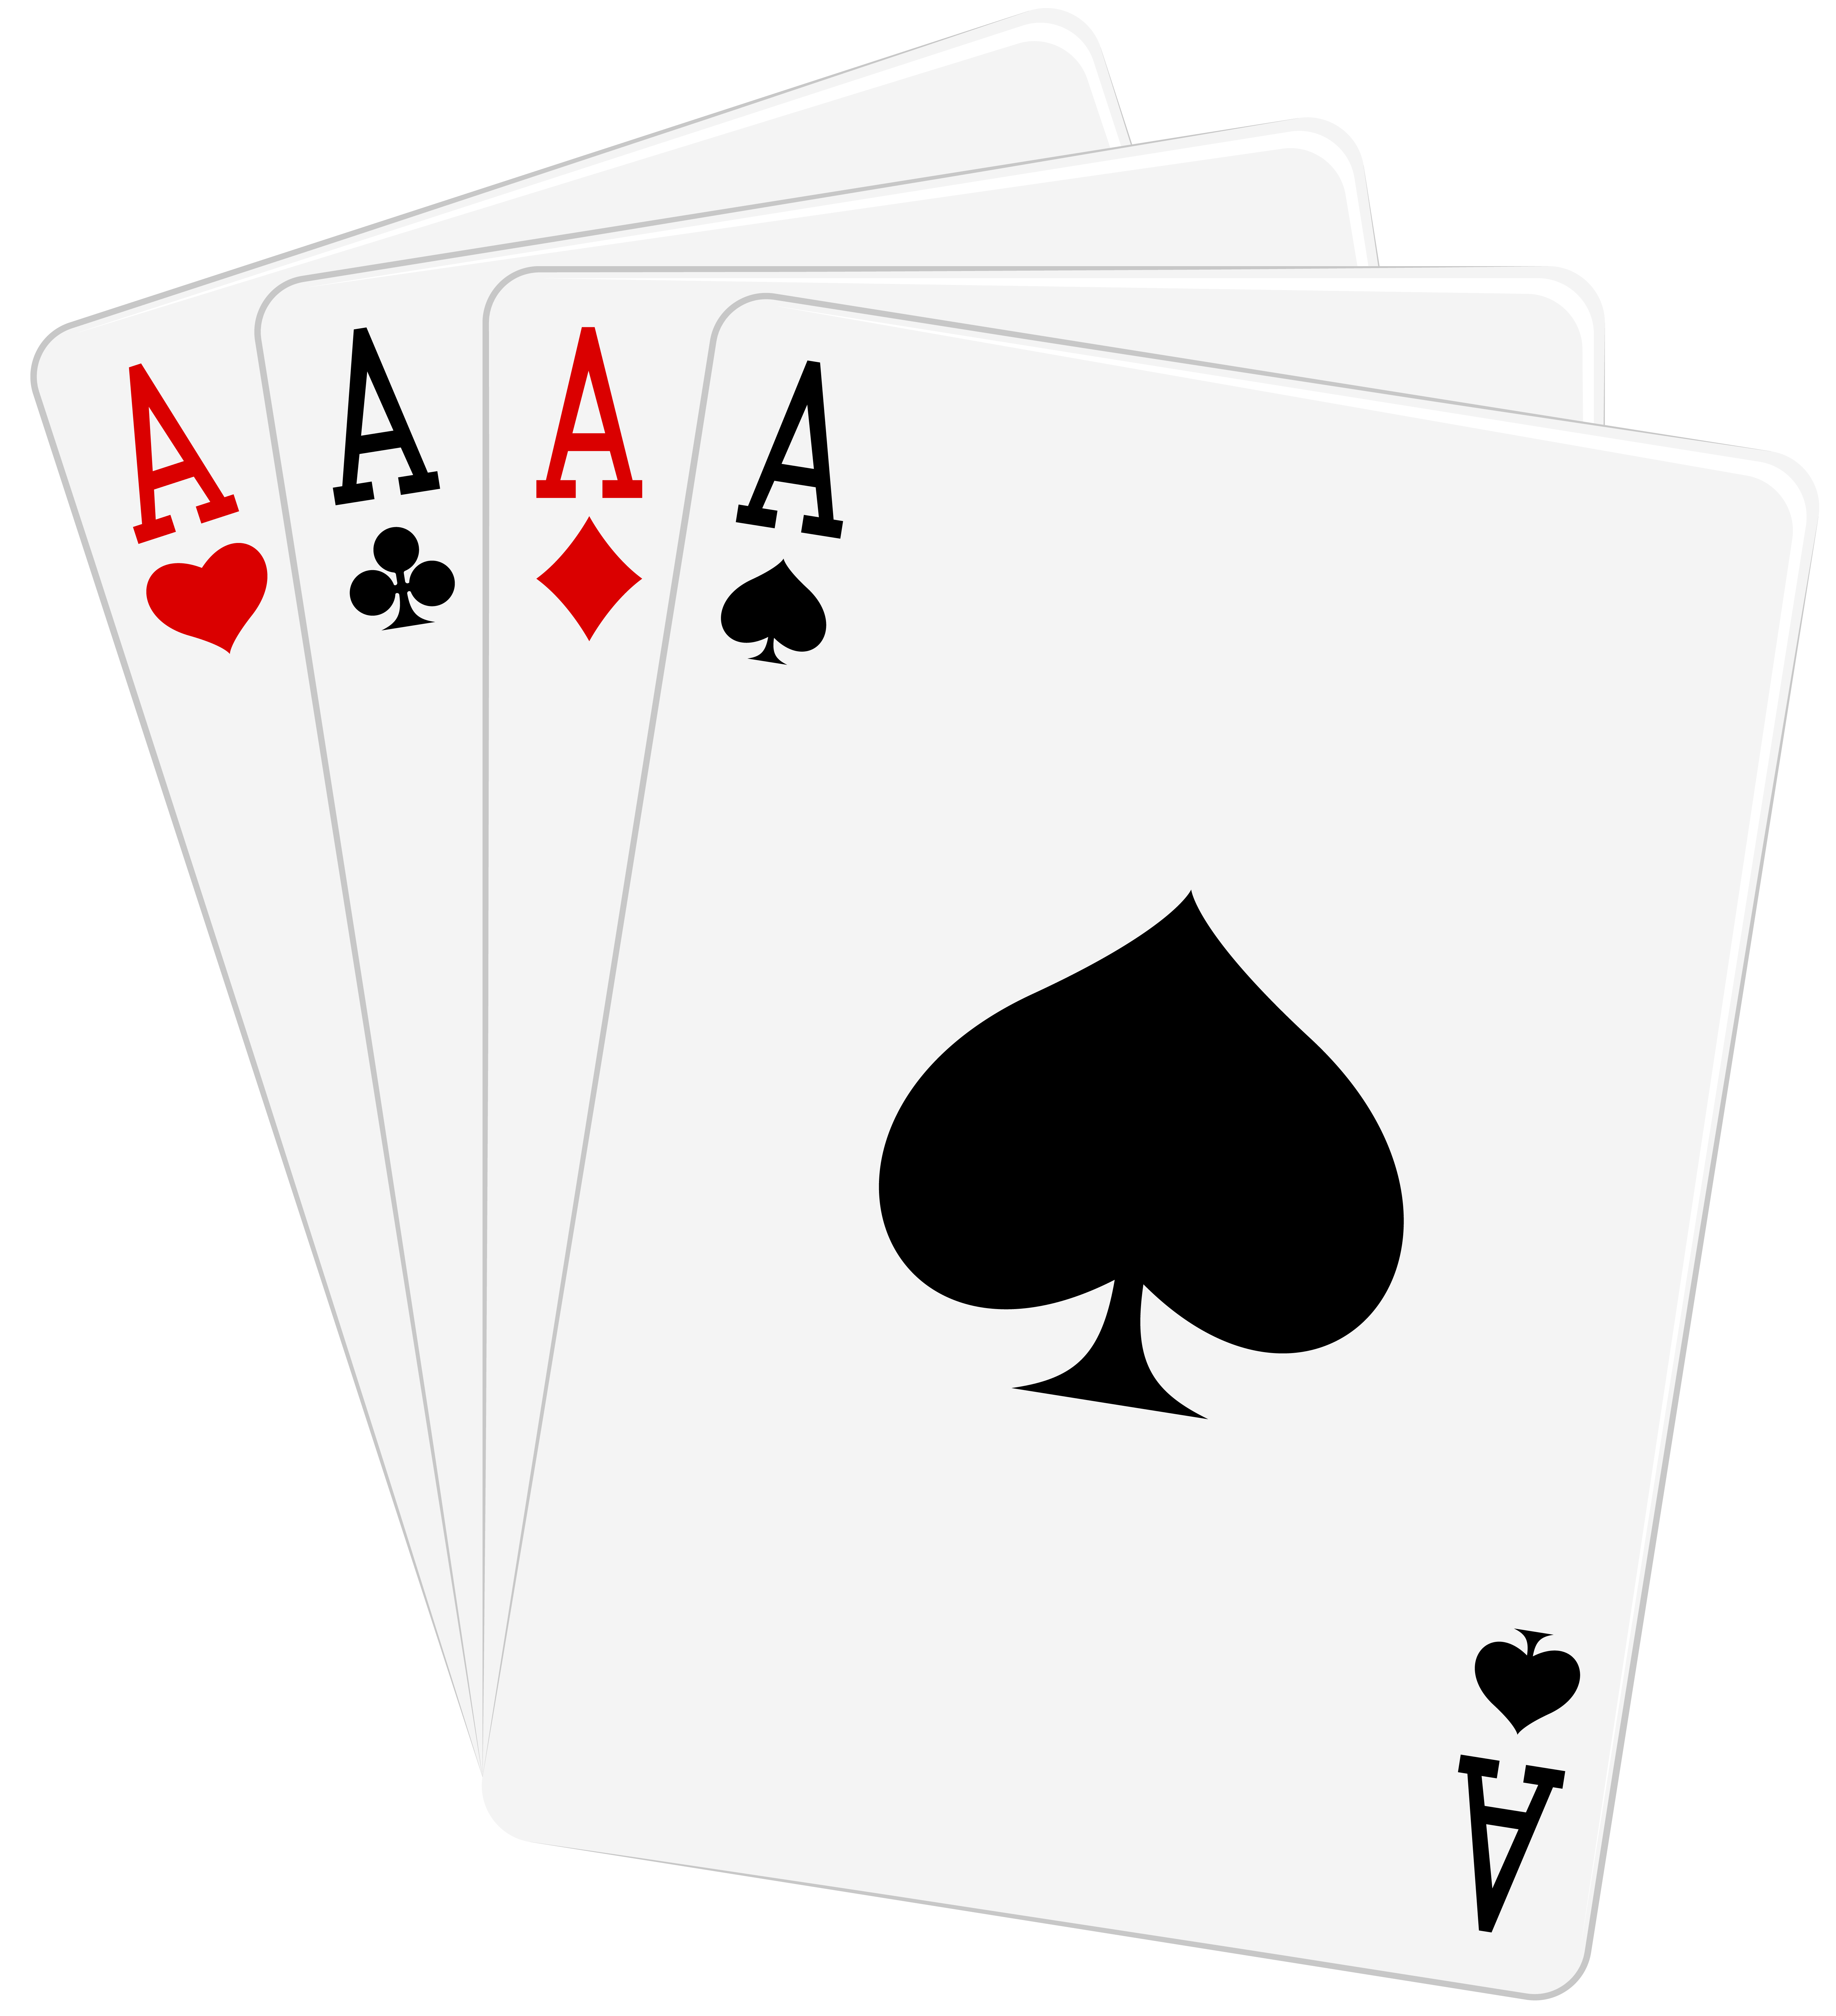 Ace playing card clipart banner free library Aces clipart - Clipground banner free library